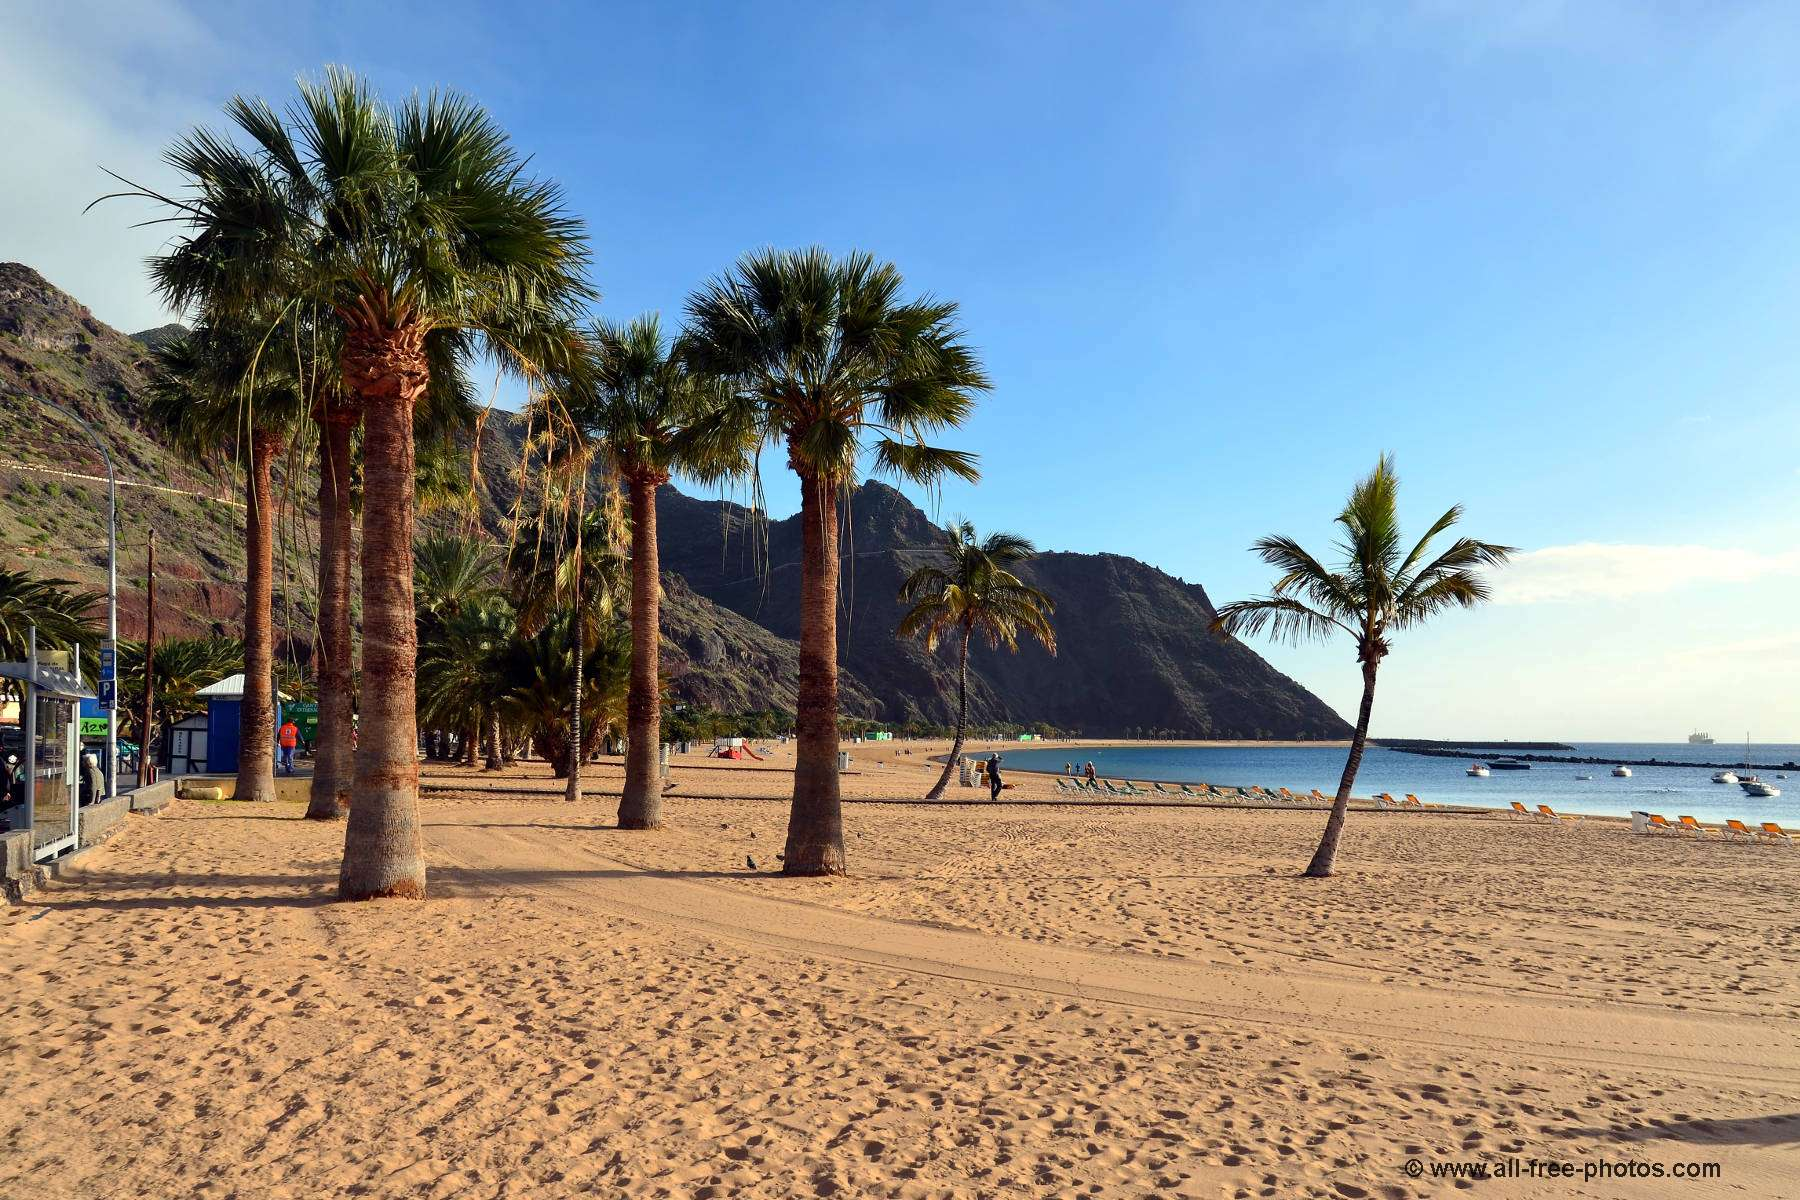 Playa de las Teresitas - Tenerife - Canary Islands